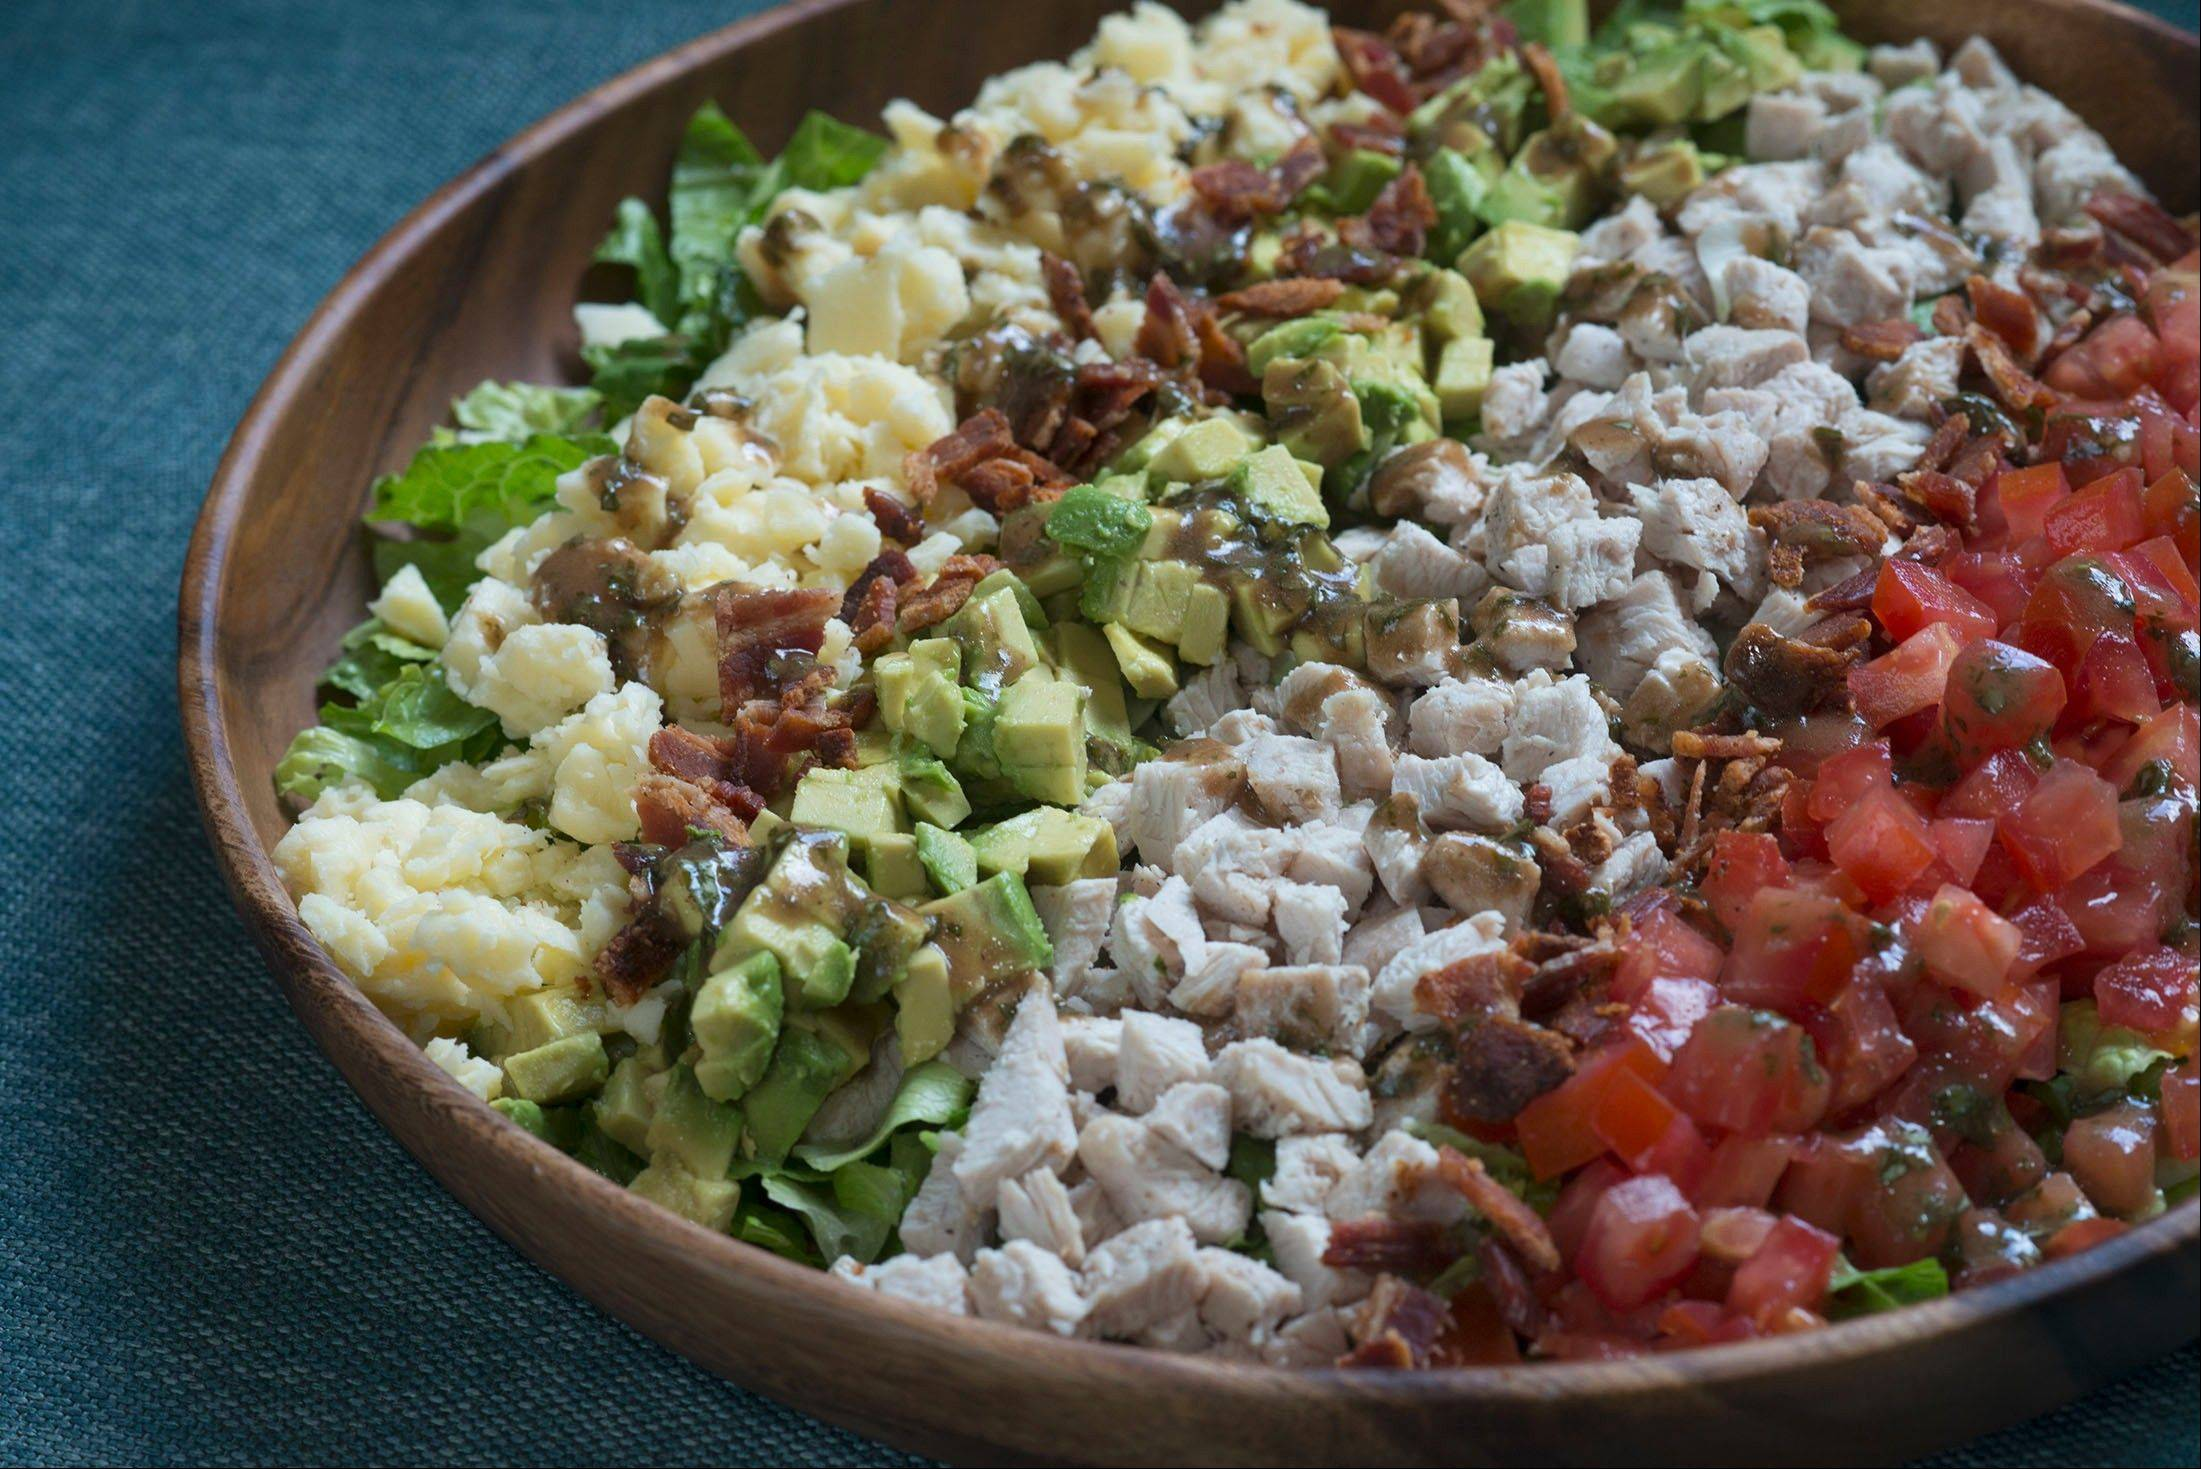 Chopped Turkey Club Salad with Basil Balsamic Dressing